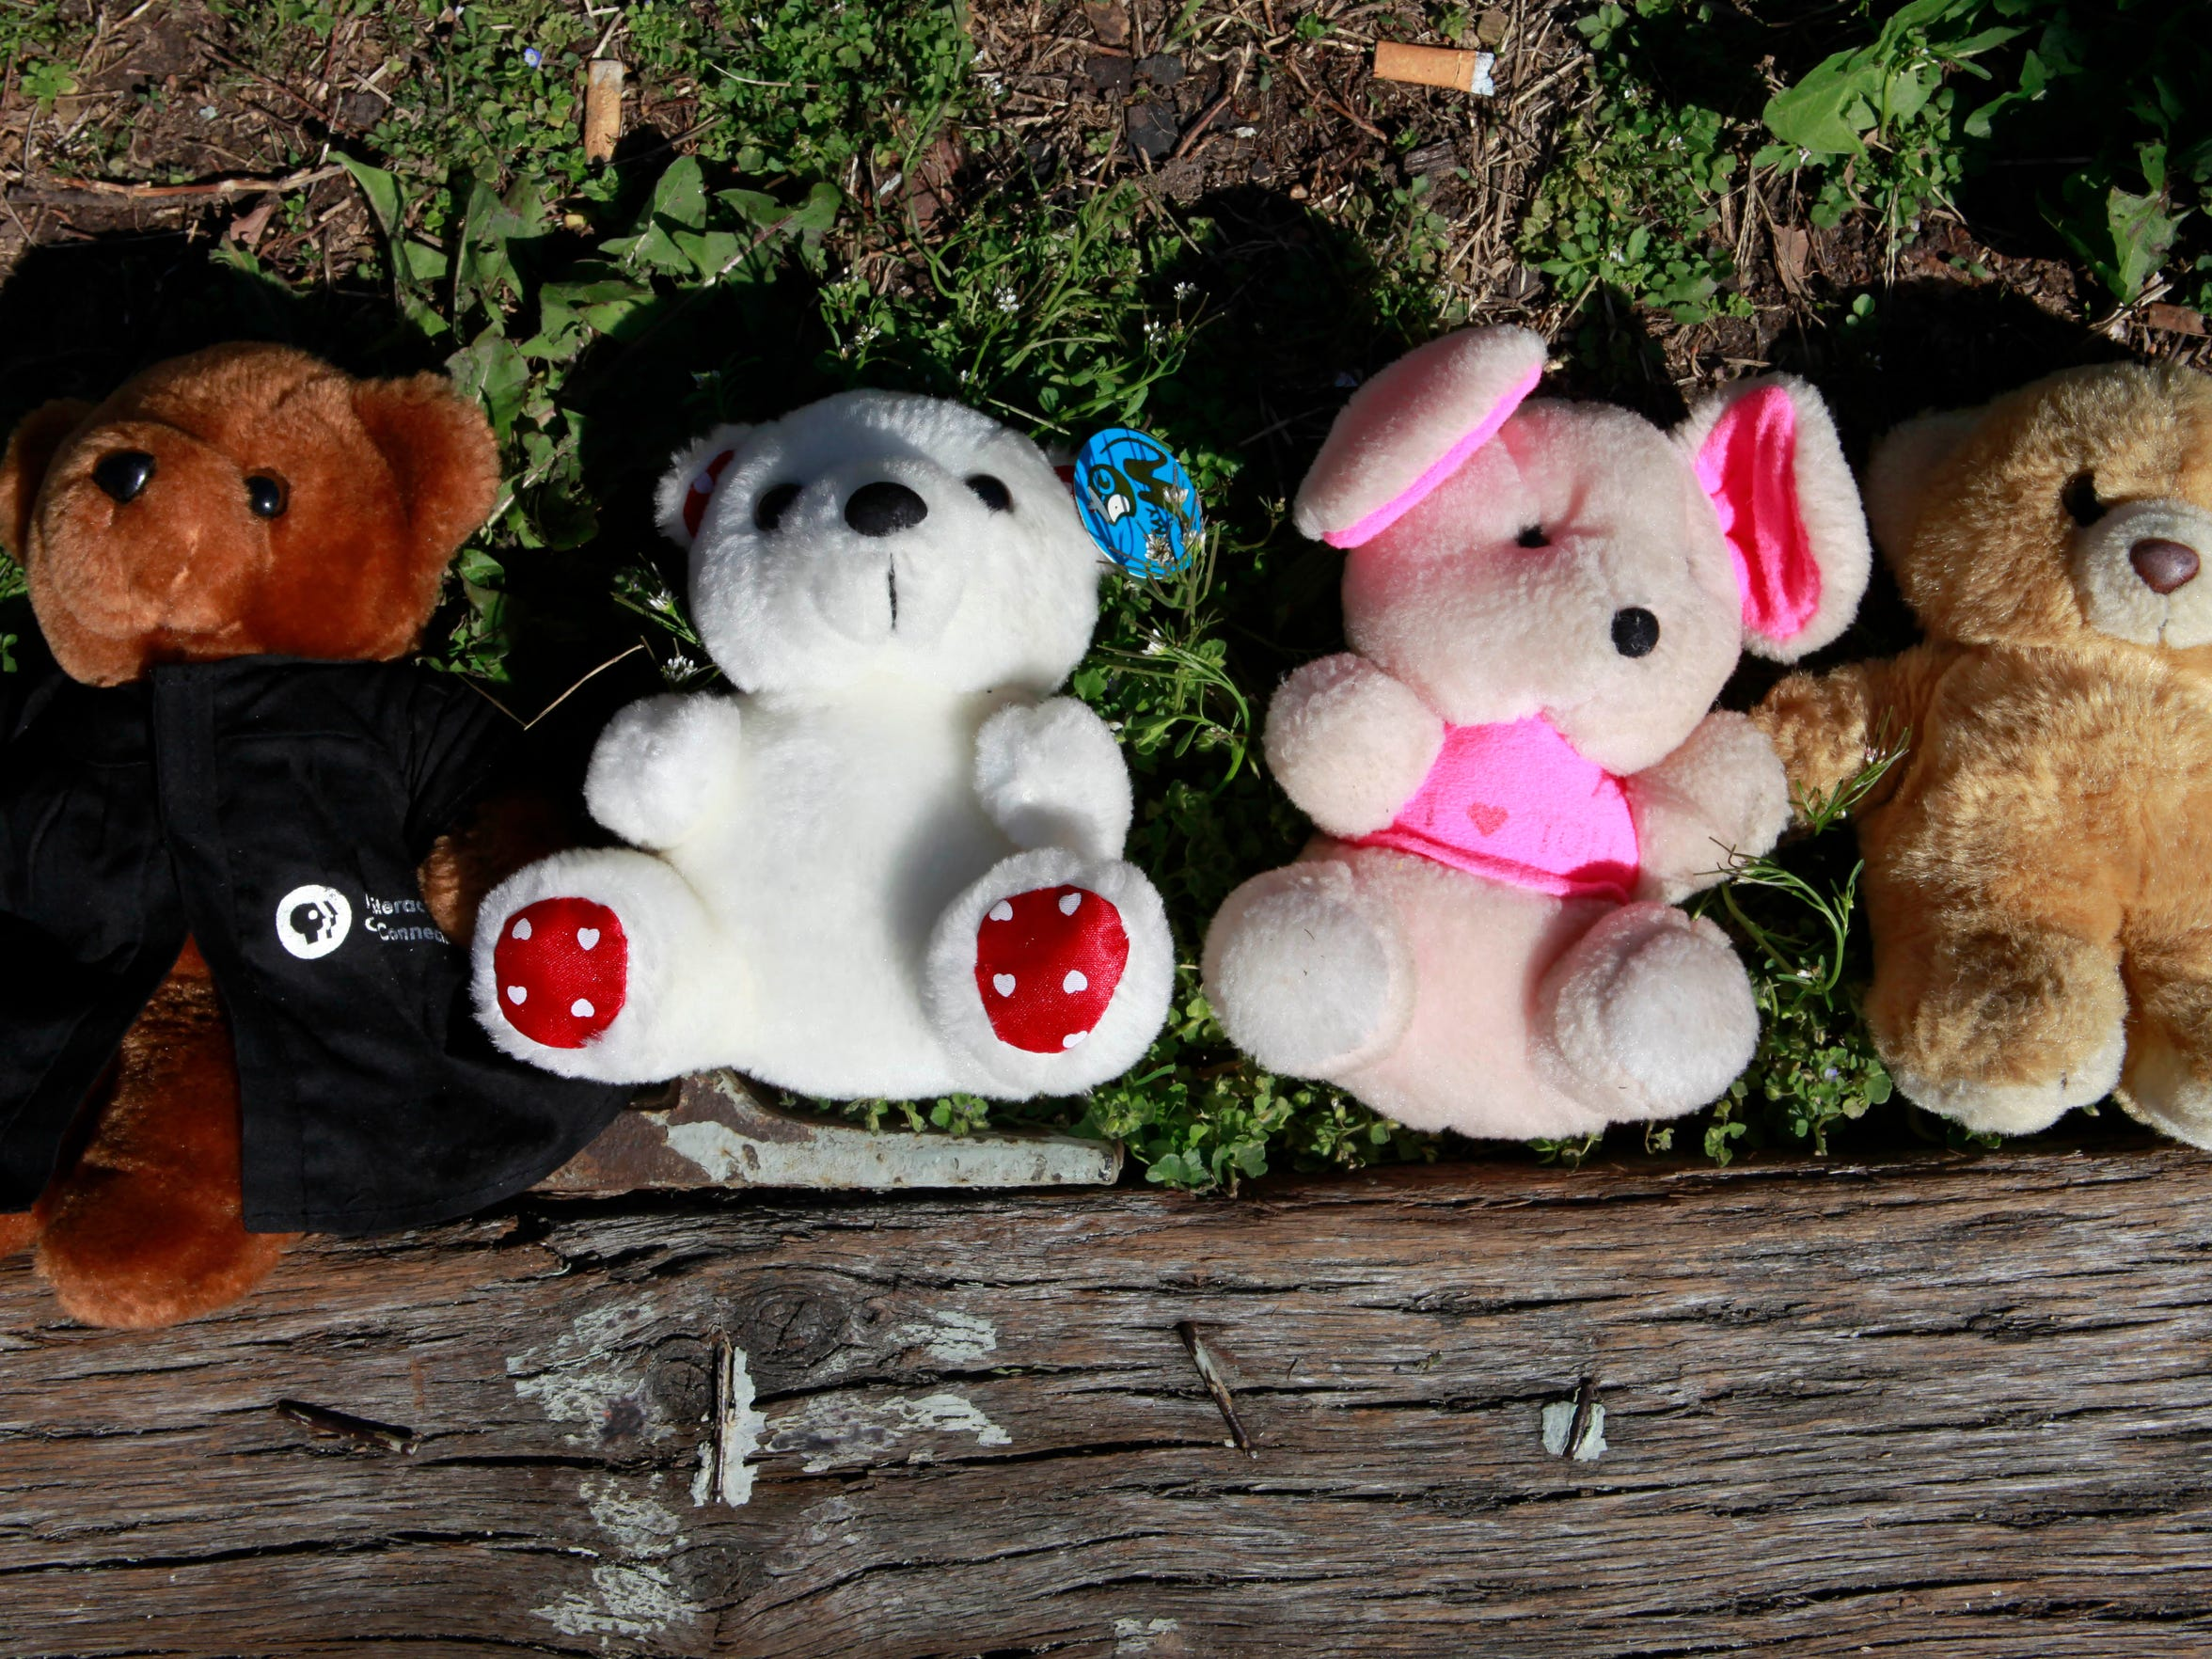 A tribute of four teddy bears, lay on the yard of building where ten people were shot Tuesday night, in Washington, on Wednesday, March 31, 2010. Four people were killed in the shooting. (AP Photo/Jacquelyn Martin)